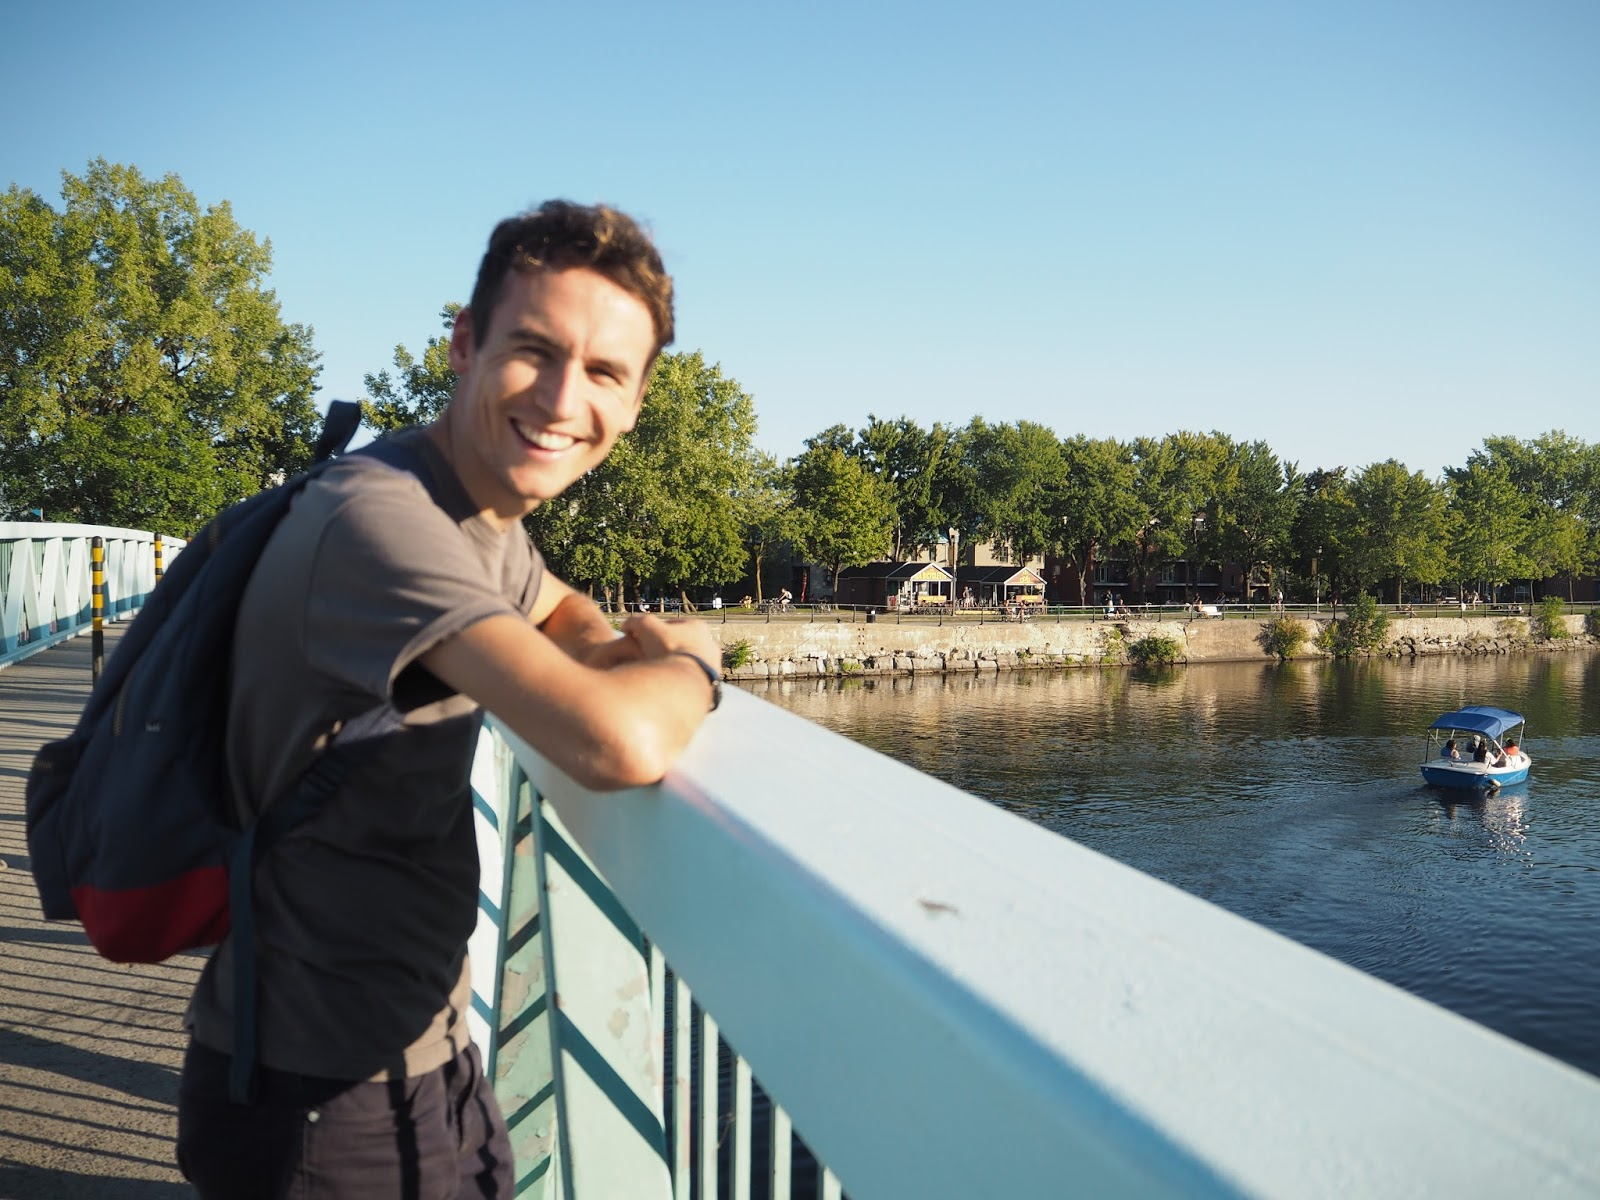 Montreal photo diary and life update